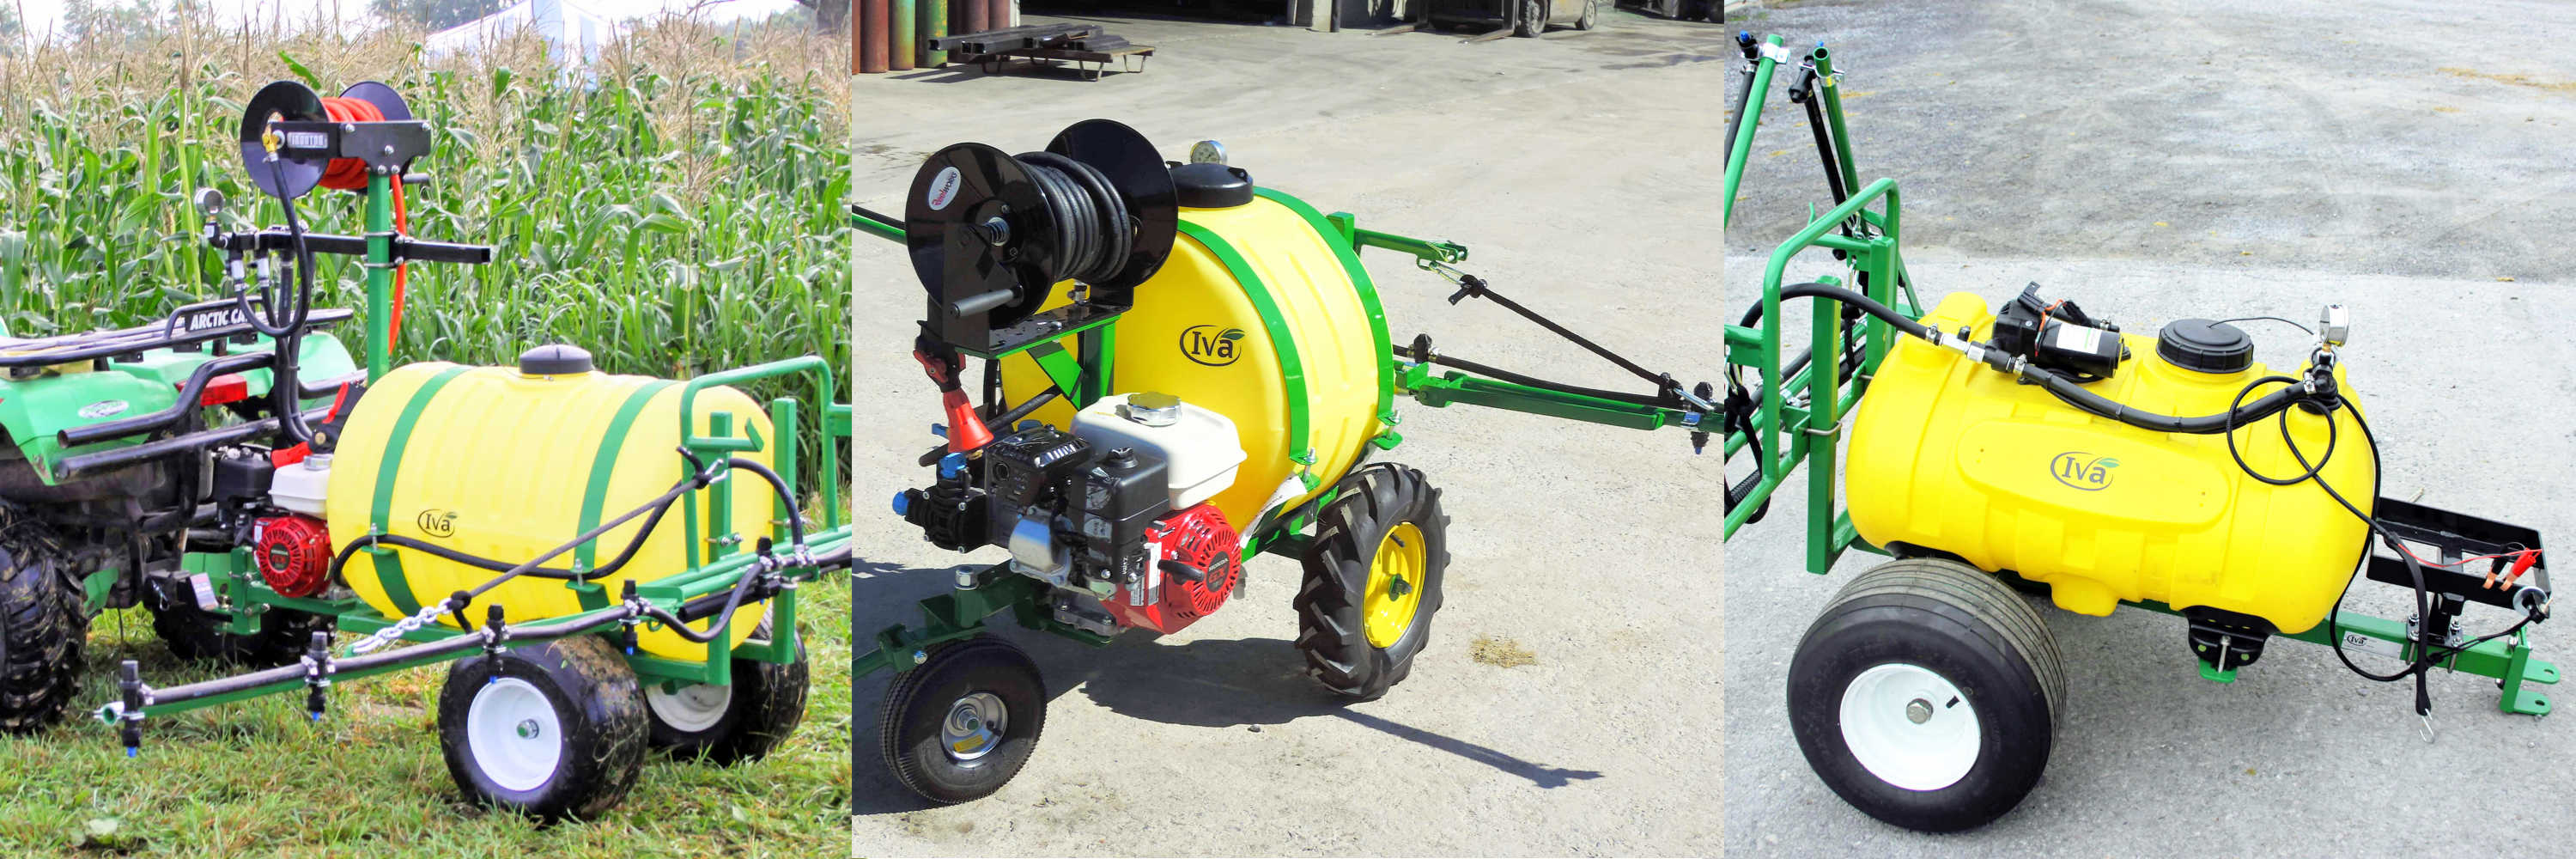 Orchard sprayers, lawn and garden sprayers  from Iva Manufacturing